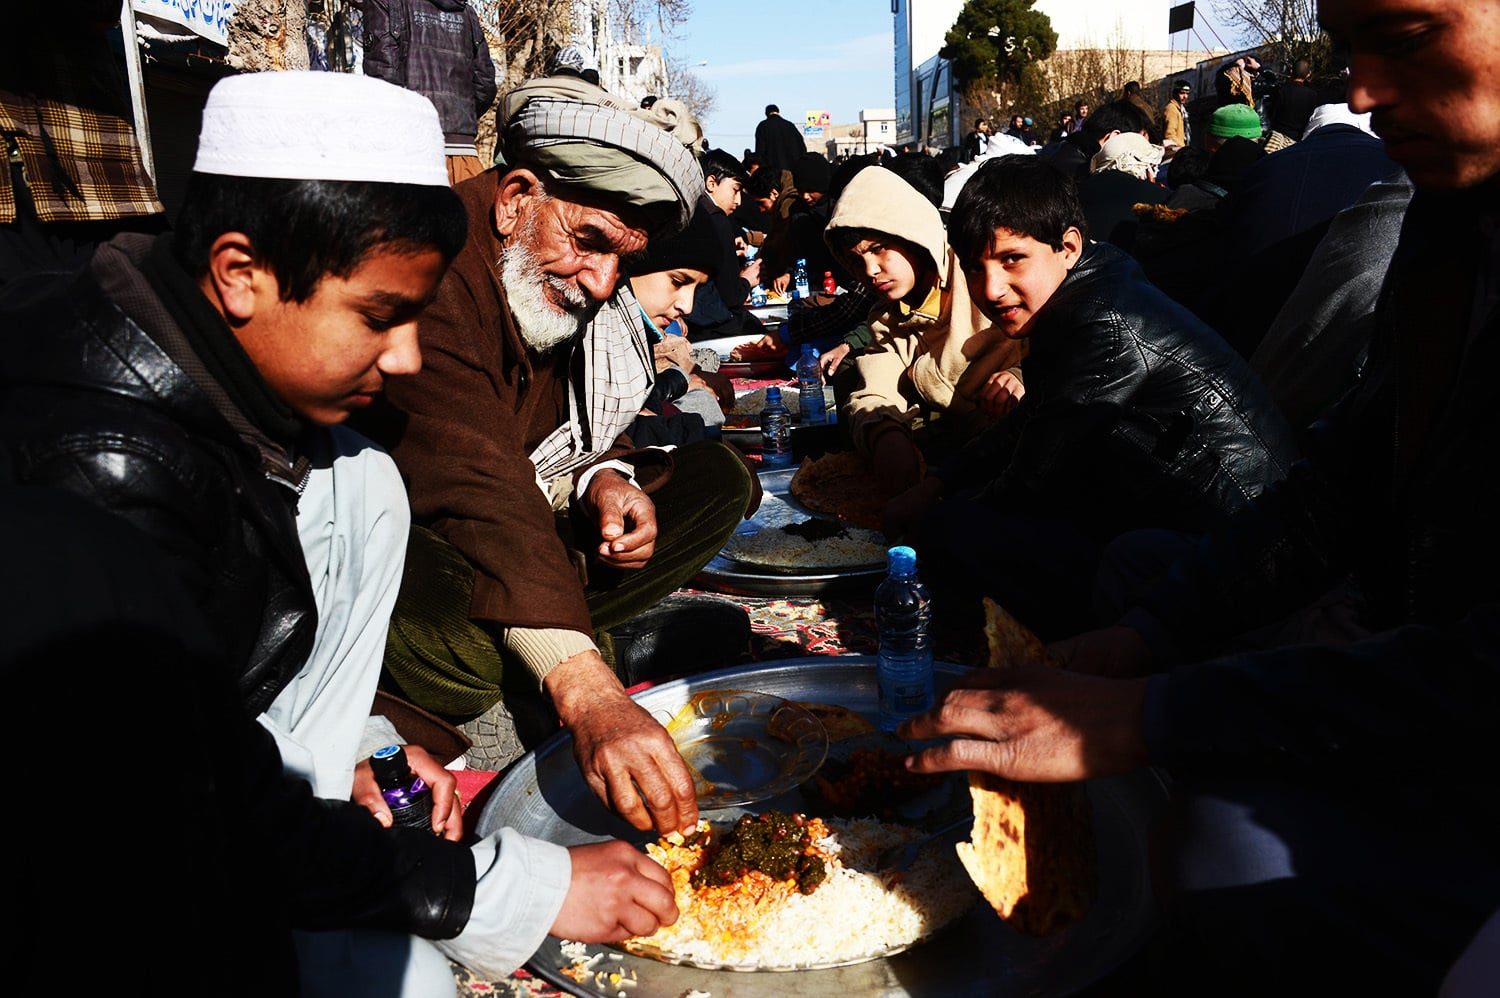 Afghan men and boys eat during celebrations marking the birth anniversary of the Prophet Muhammad (PBUH).—AFP